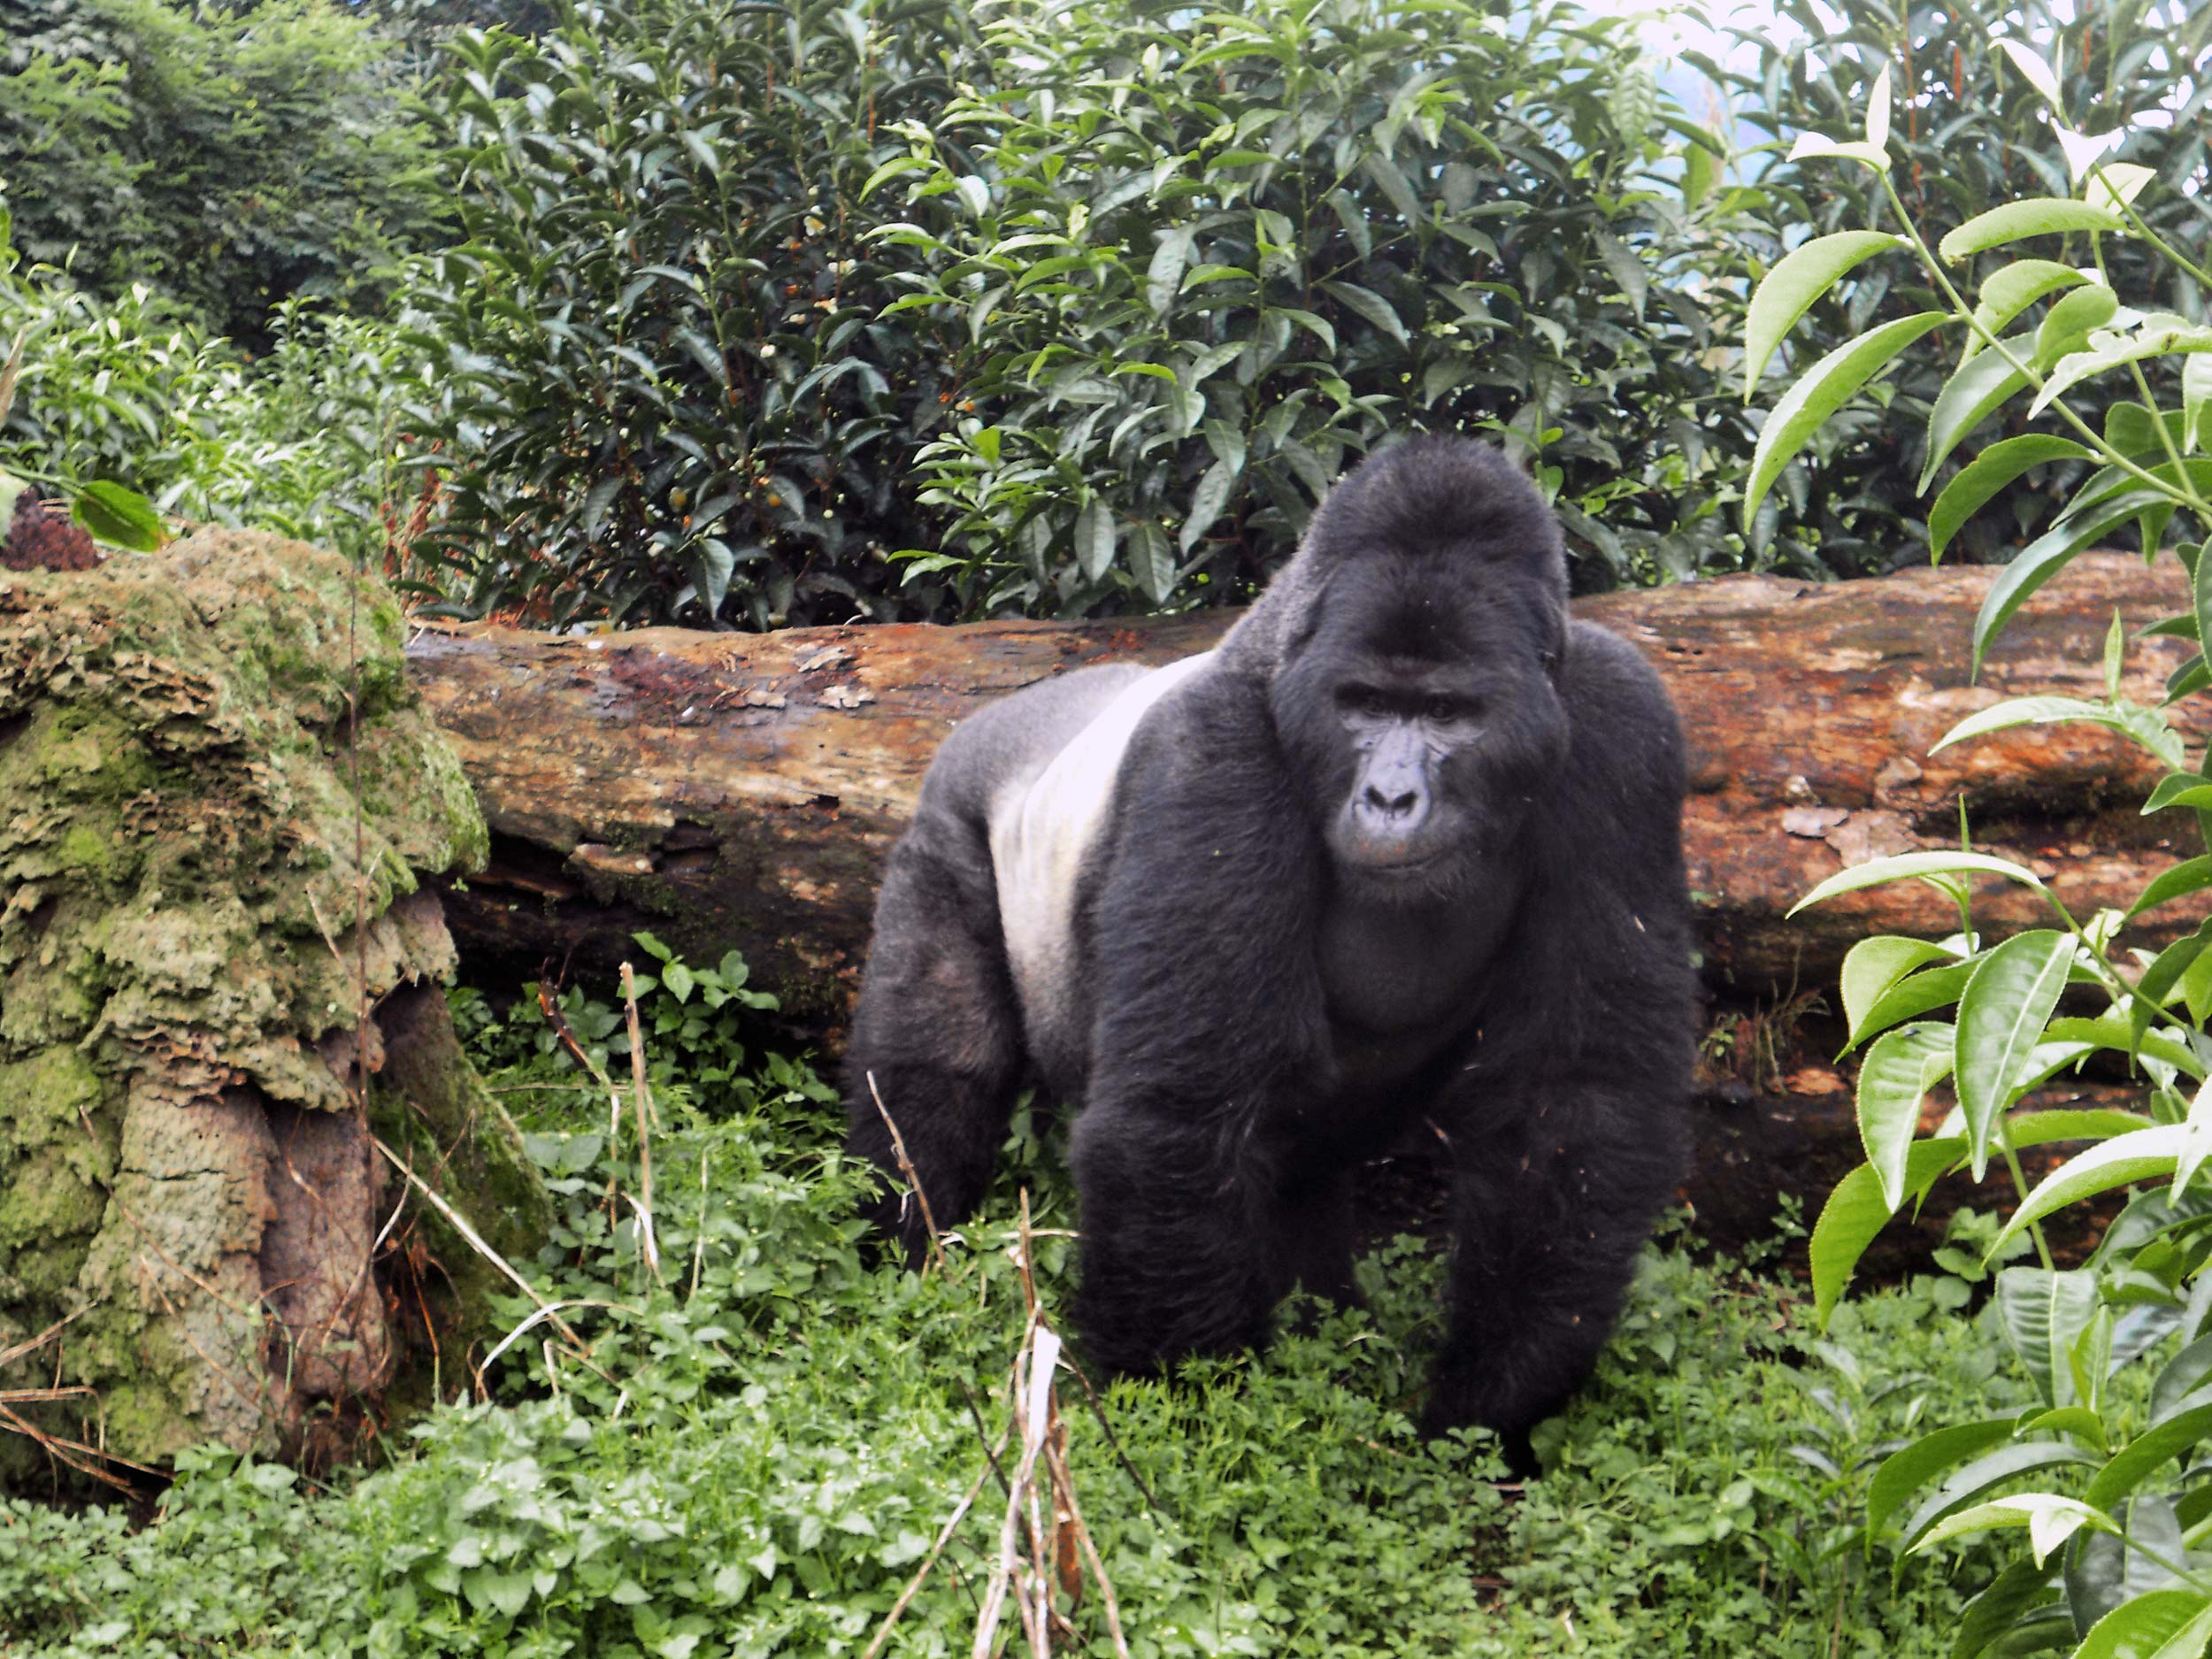 gorilla Trekking - Uganda is one of only three countries you can can take the once in a lifetime opportunity to walk amongst these mighty and gentle beasts.